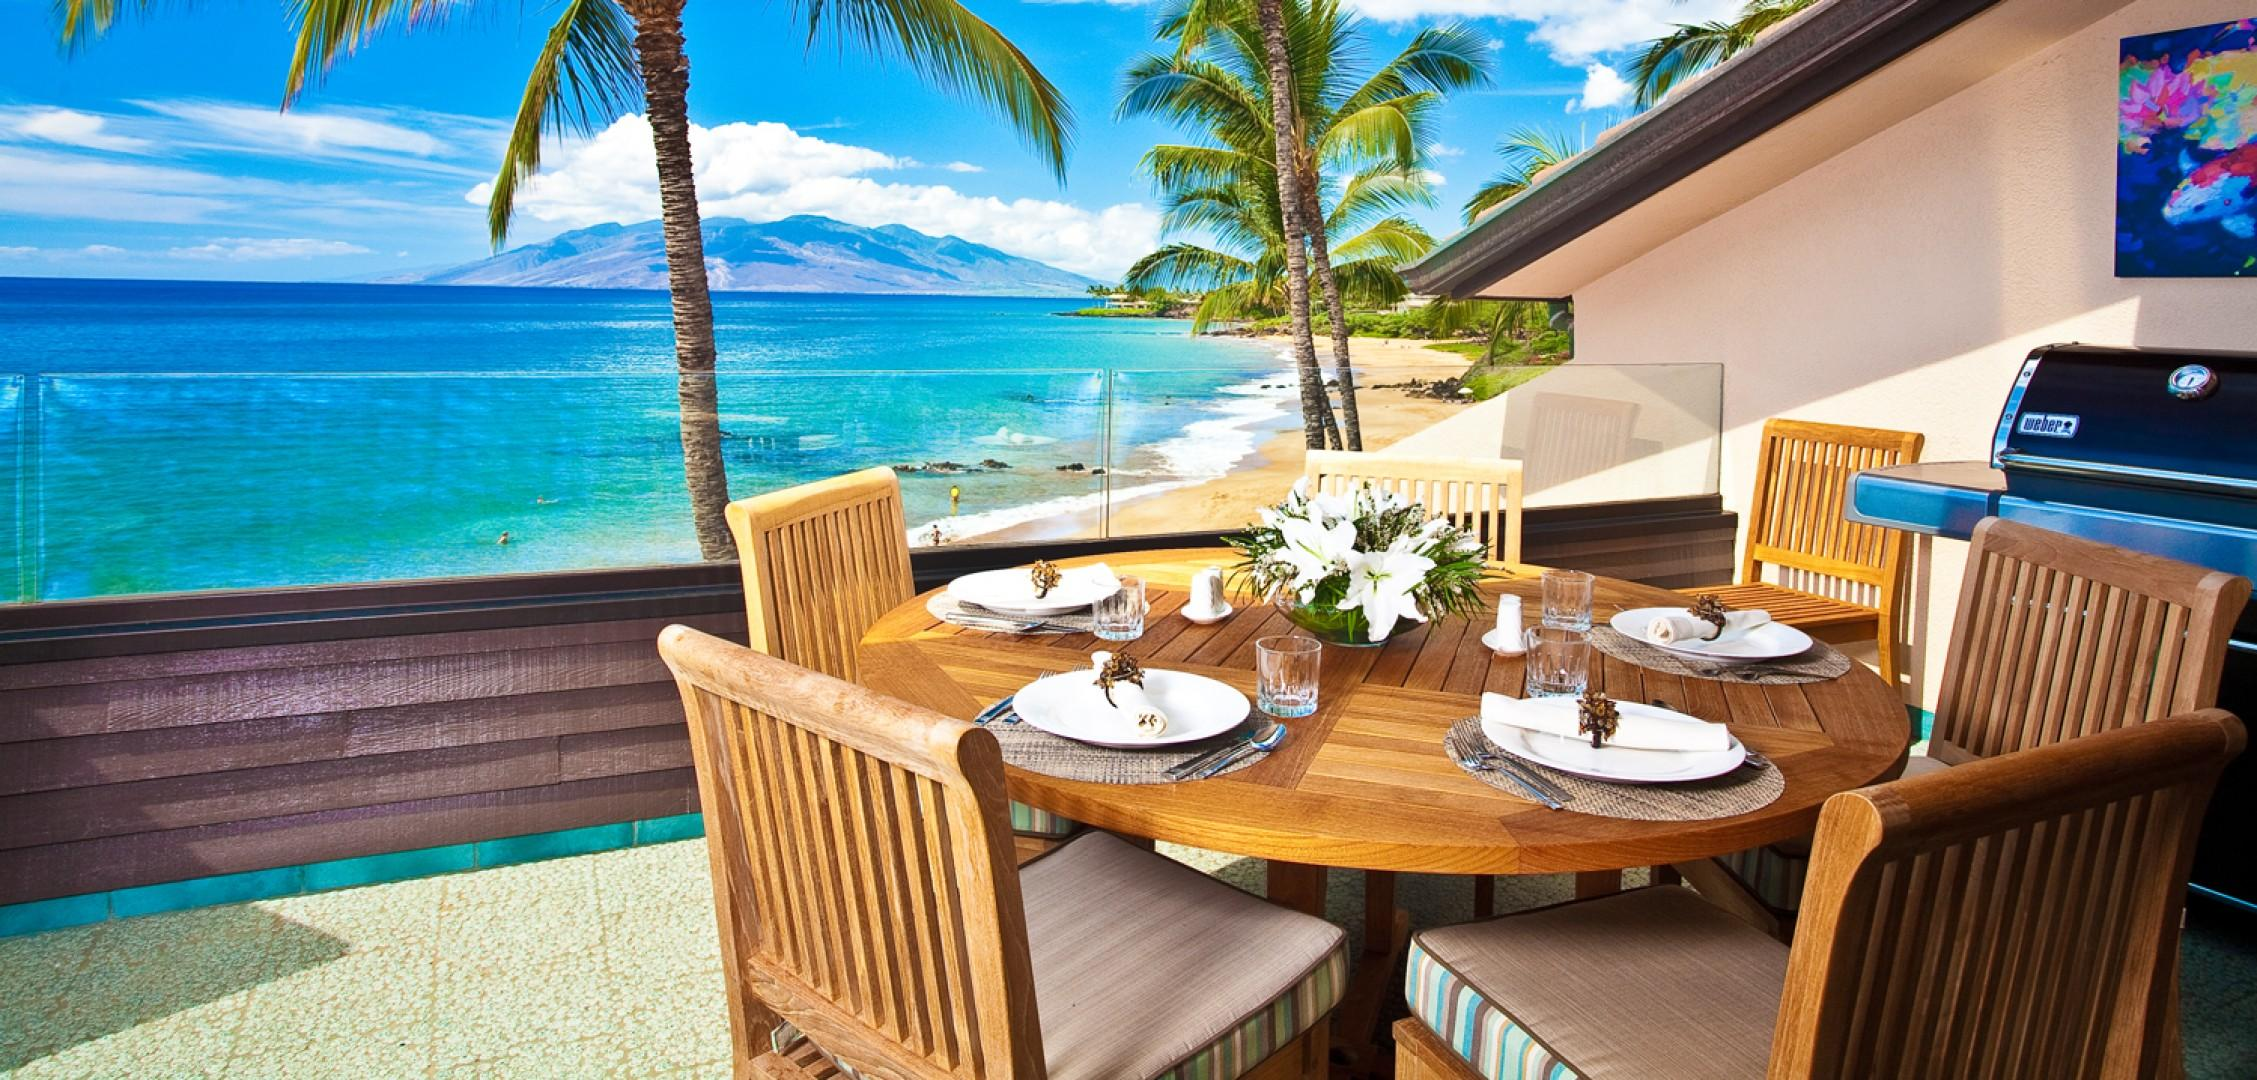 Outdoor Dining For Six at Sunny Surf E301 at Makena Surf Resort with BBQ and Beautiful Sunsets and Moonsets